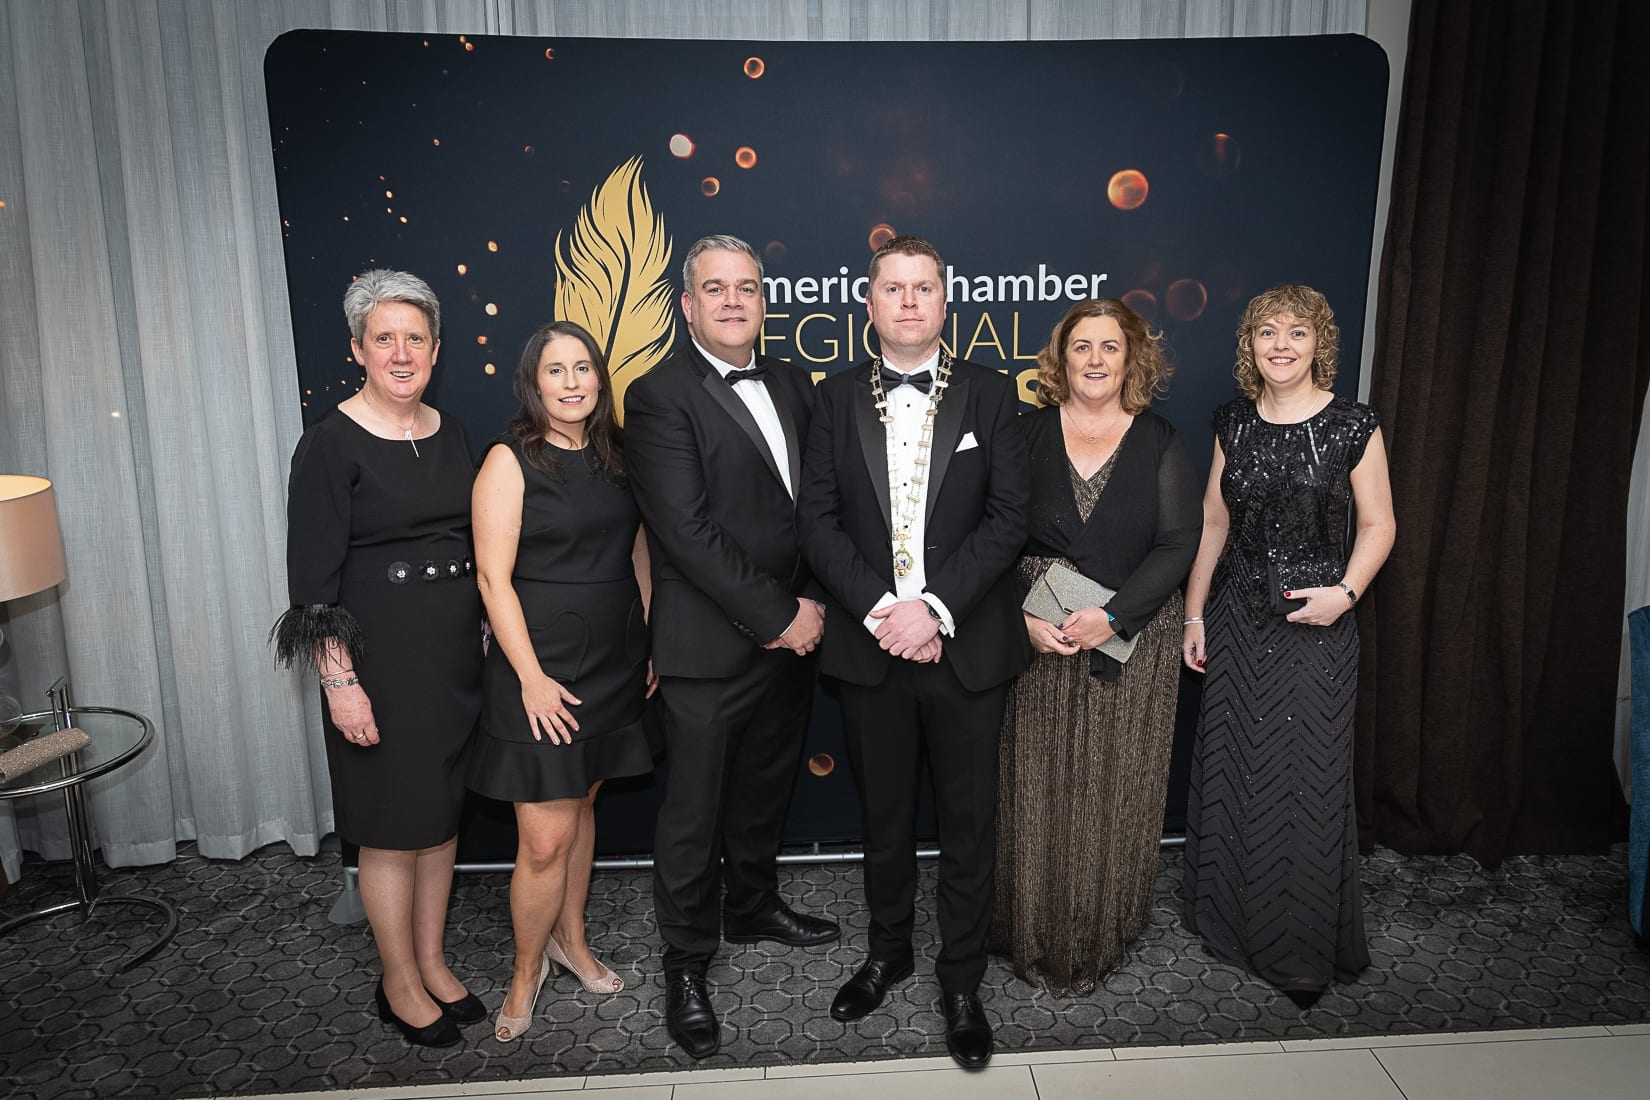 No repro fee-Limerick Chamber President's Dinner and Limerick Chamber Regional Business Awards 2019 which was held in the Strand Hotel on Friday 15th November - From Left to Right: Mary Lynch, Heather Hamilton, Noel Gavin, Eoin Ryan - President Limerick Chamber, Catherine Duffy - General Manager Northern Trust, Yvonne O'Keeffe all from Northern Trust  Photo credit Shauna Kennedy